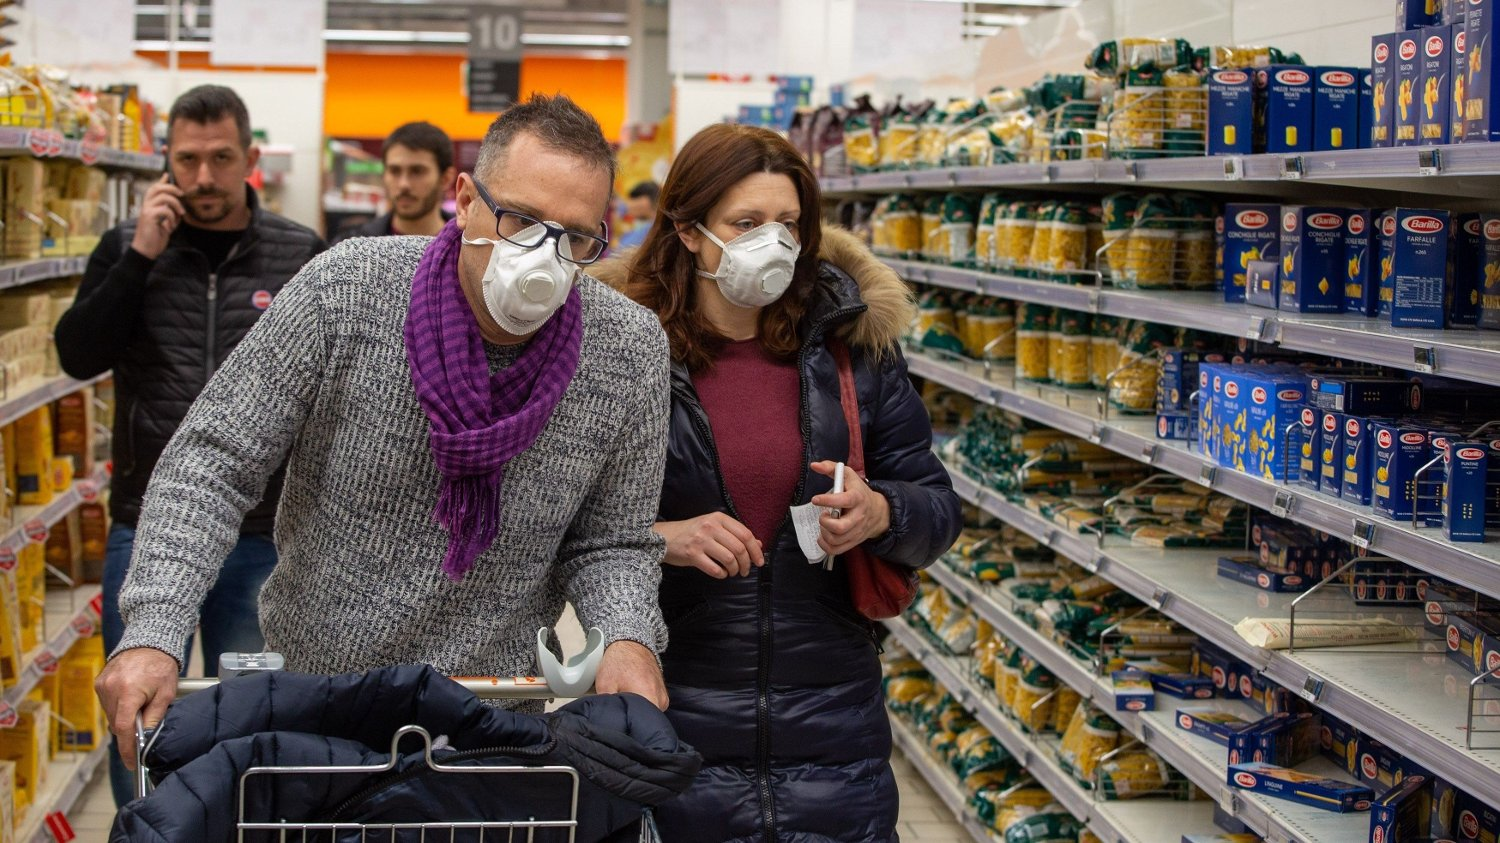 Coronavirus in Italy. Consequences of Corona virus infection in the city. Pictured Masks in supermarkets URN:50730662